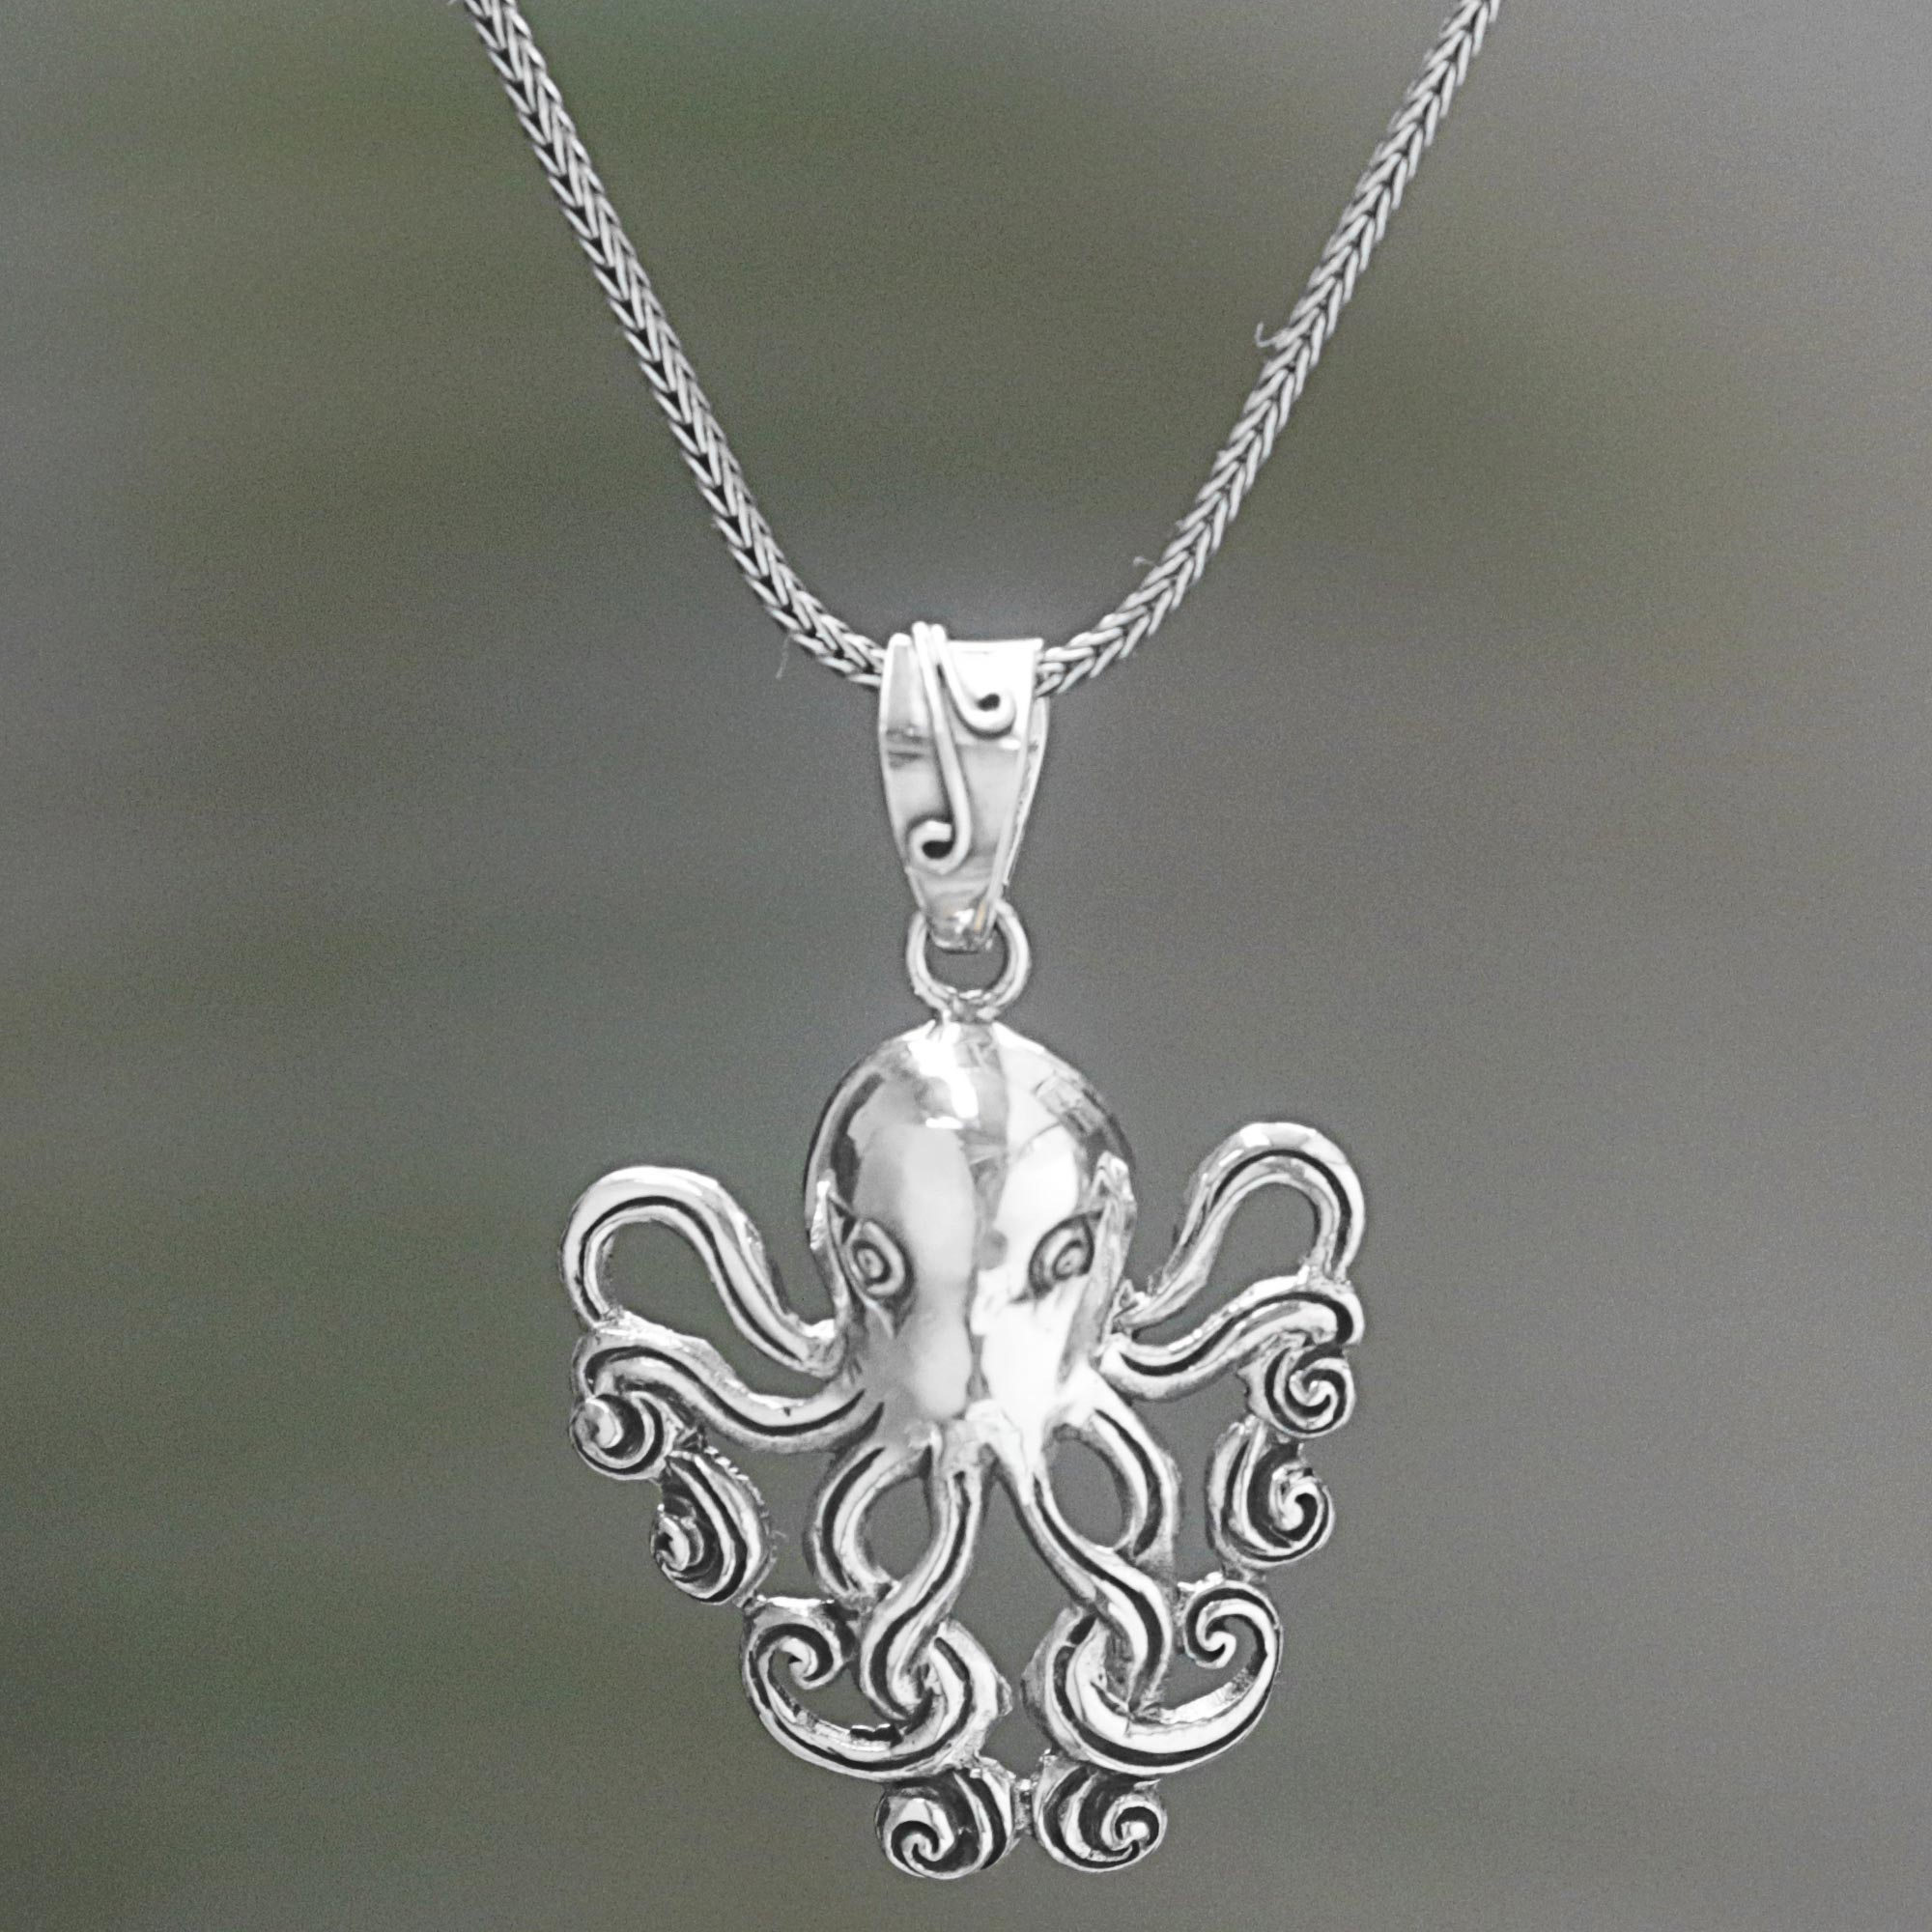 o octopus pendant jewelry torchstone hugh products